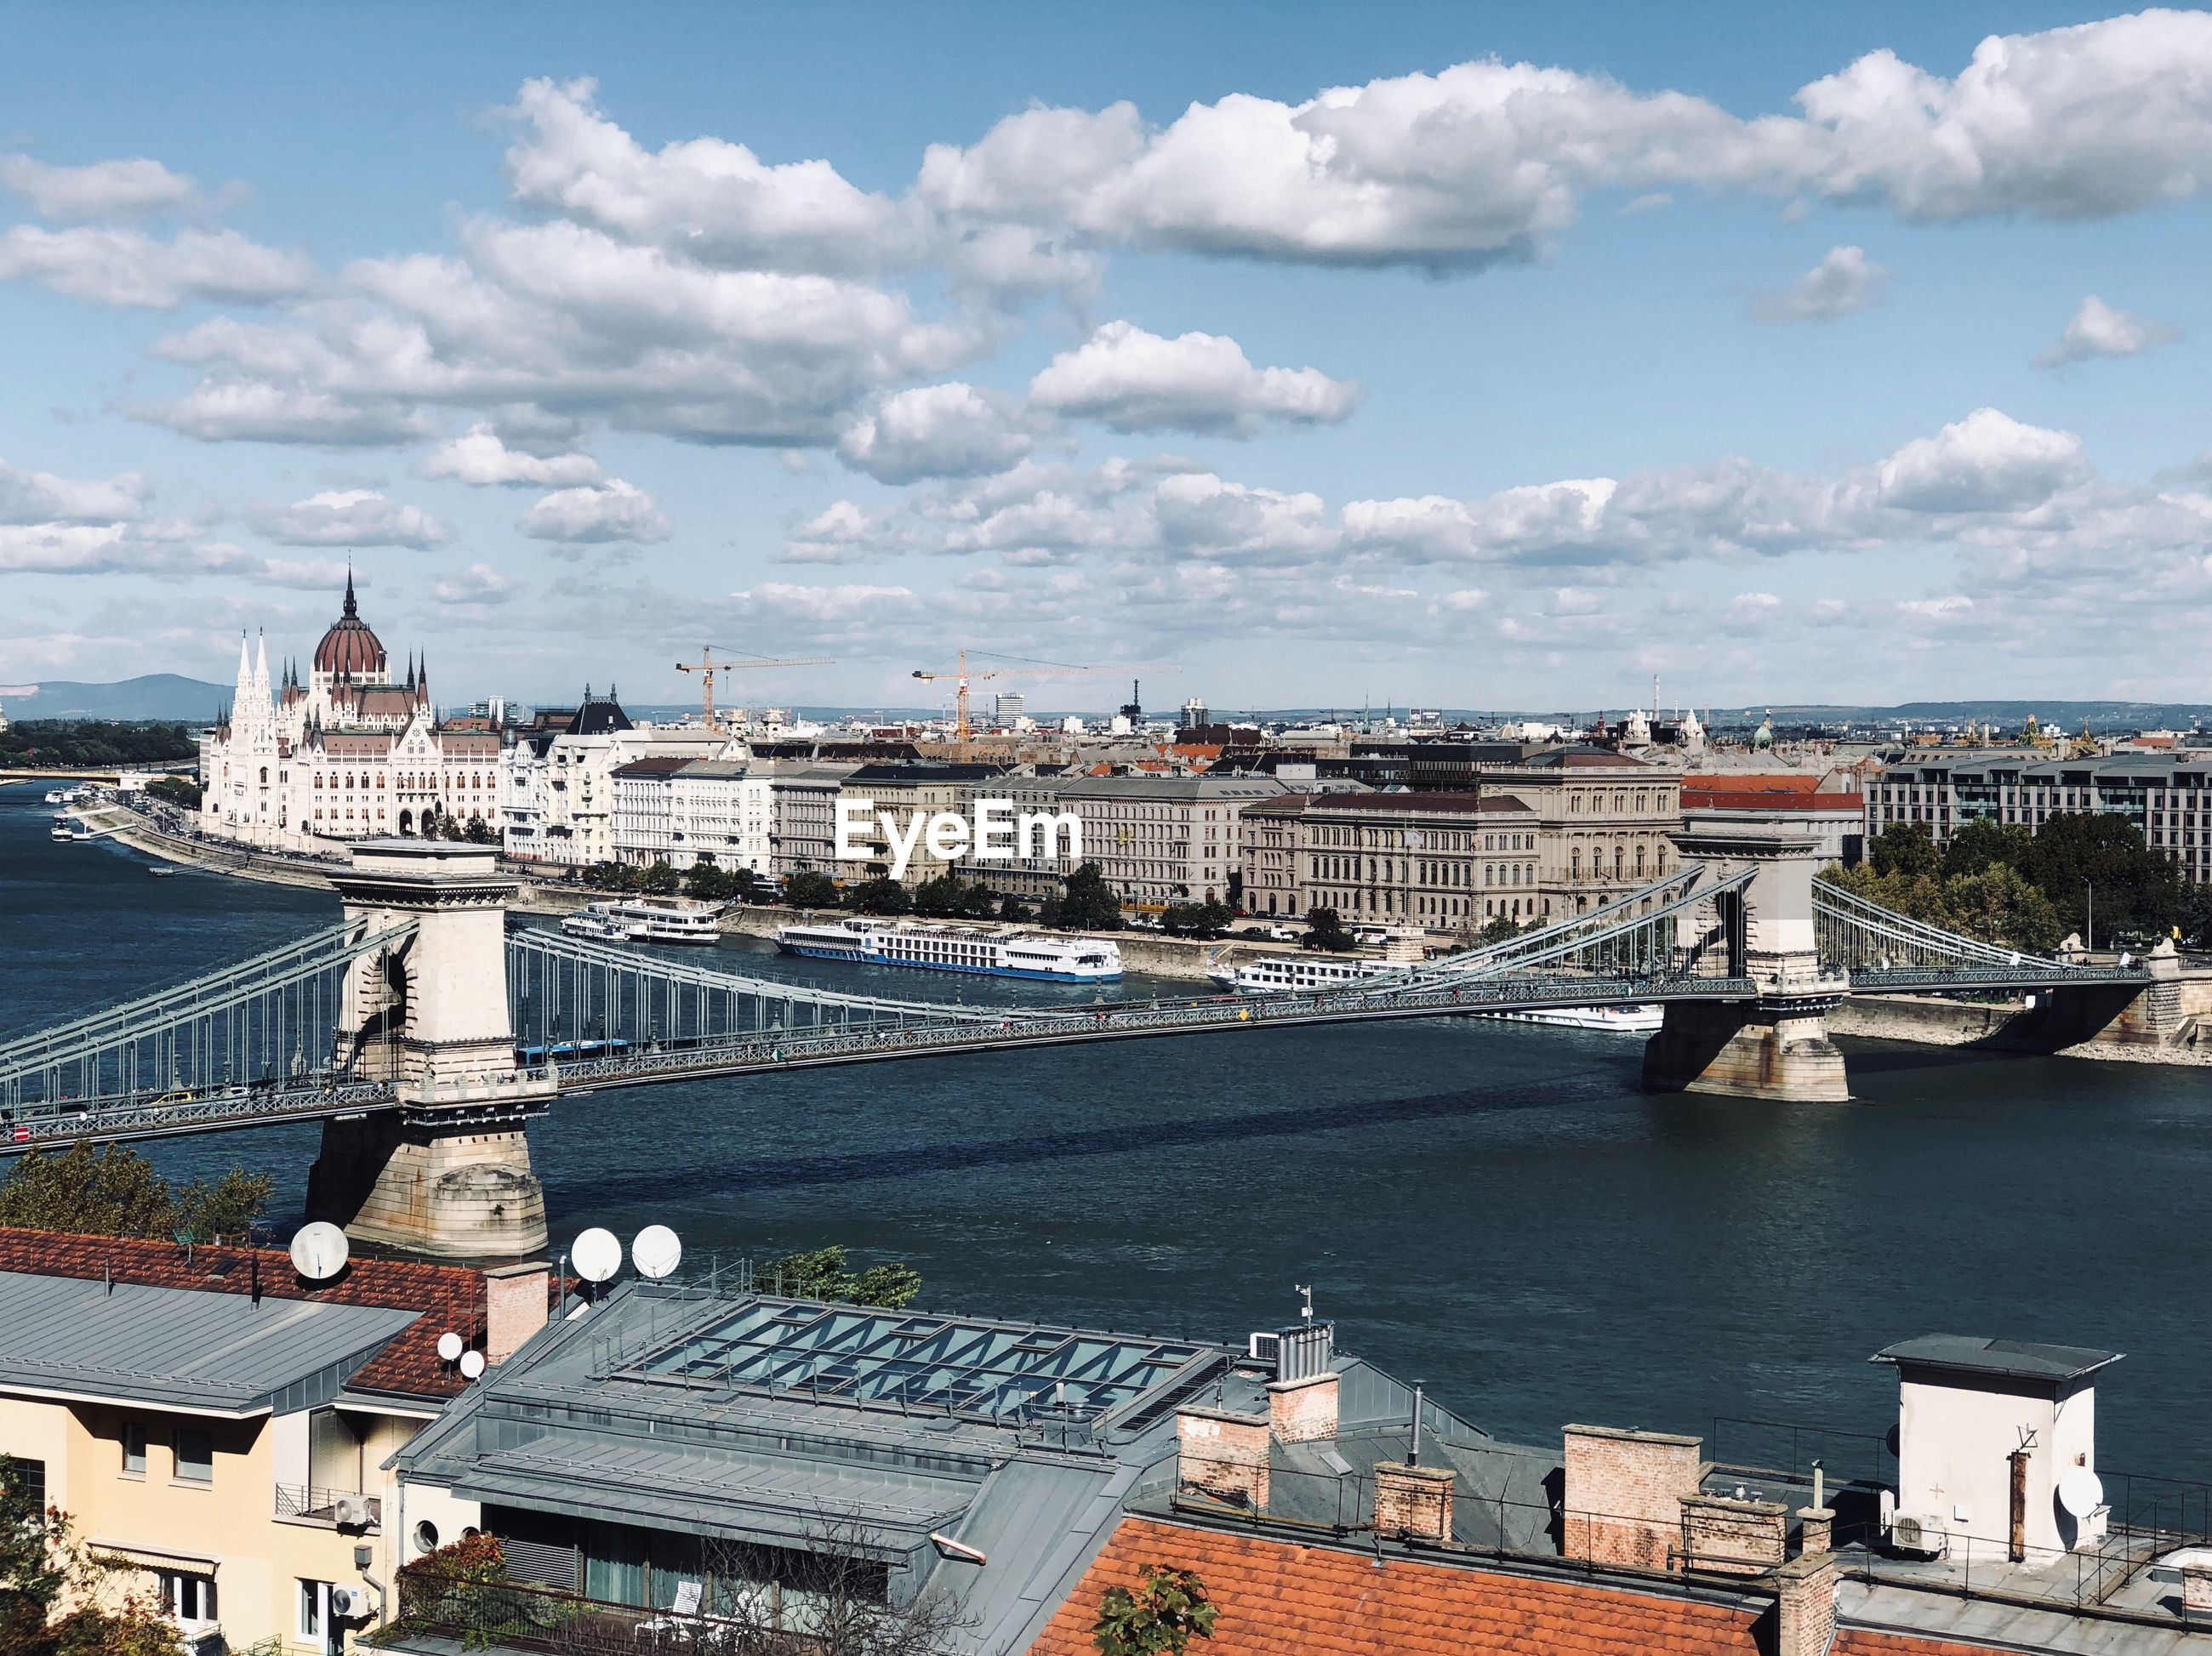 Szechenyi chain bridge over danube river in city on sunny day